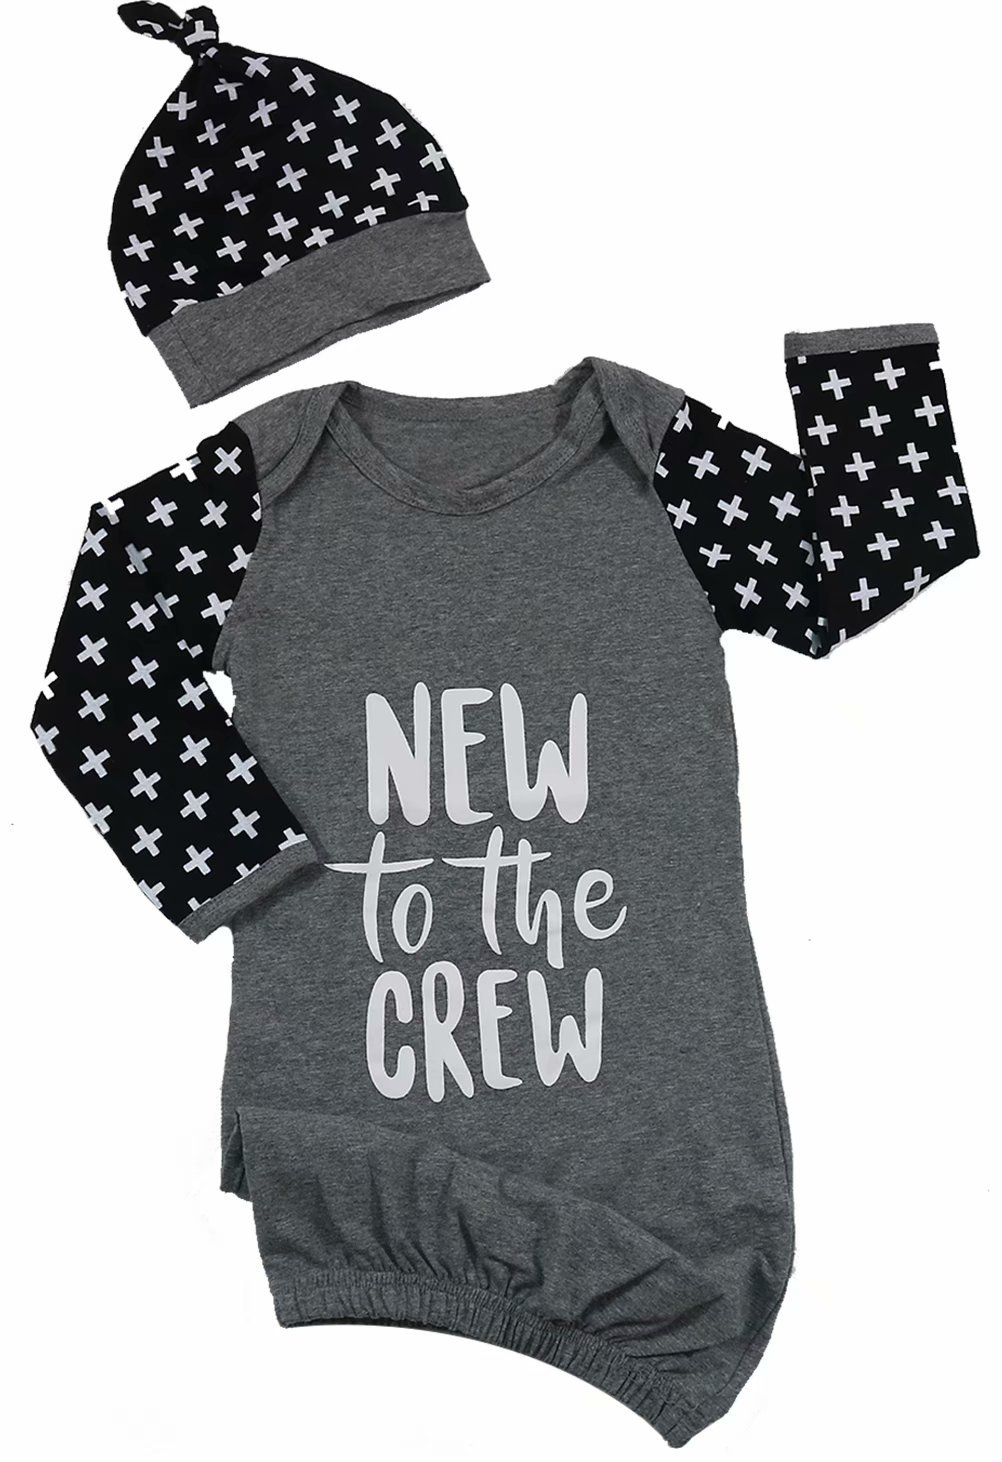 Newborn Boys Girls New to The Crew Letter Print Sleepsack Bag Coming Home Outfit with Hat Size 0-6 Months/Tag70 (Gray)